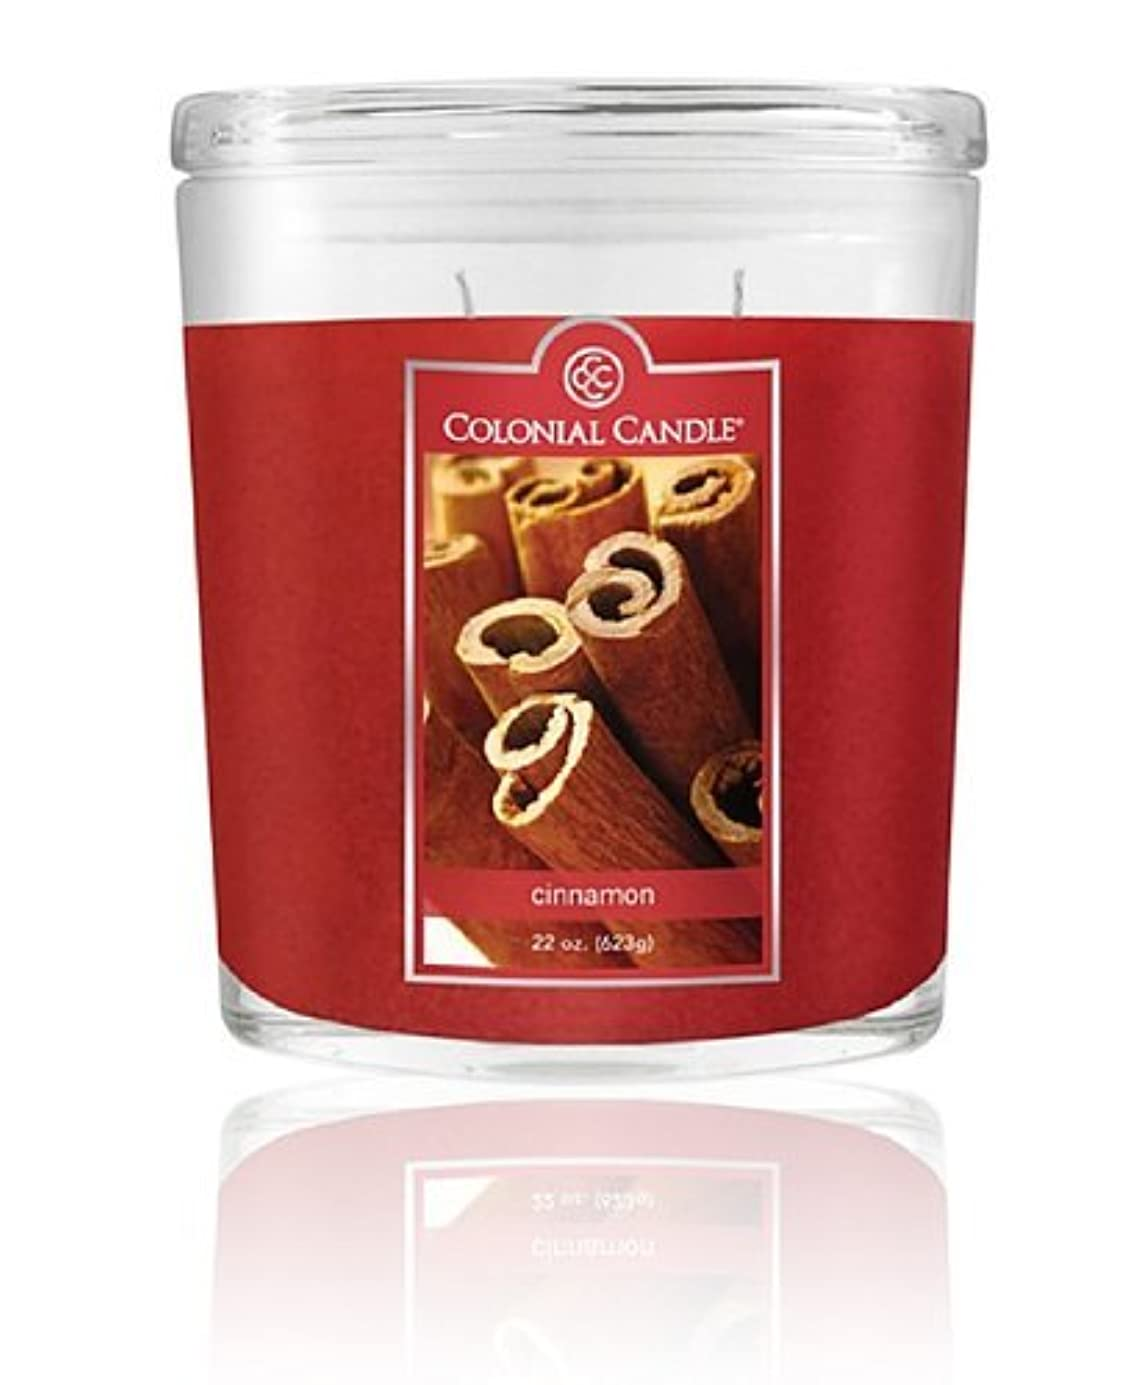 Colonial Candle Cinnamon Oval Jar Candle 22 Oz. by Colonial Candle [並行輸入品]